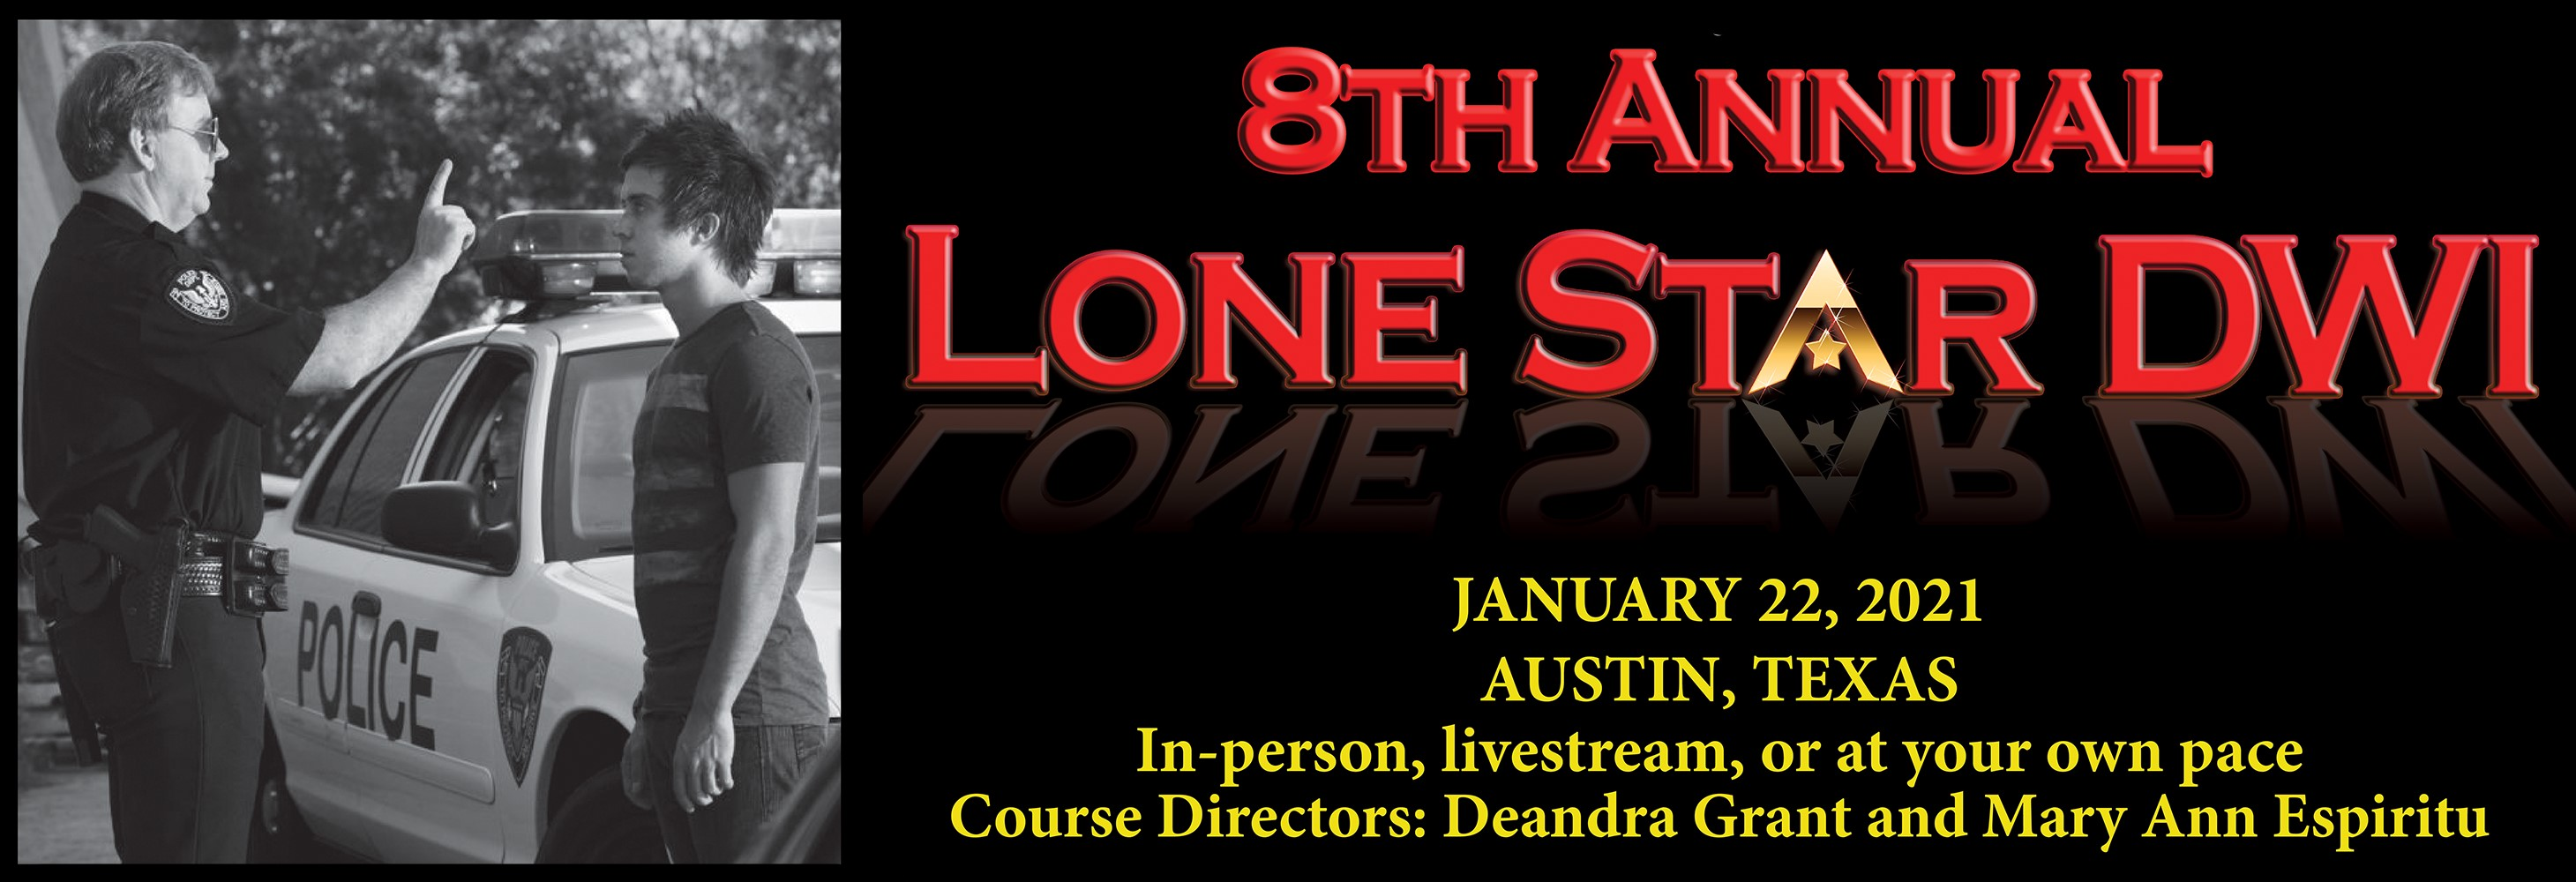 8th Annual Lone Star DWI: DWI Defense & COVID